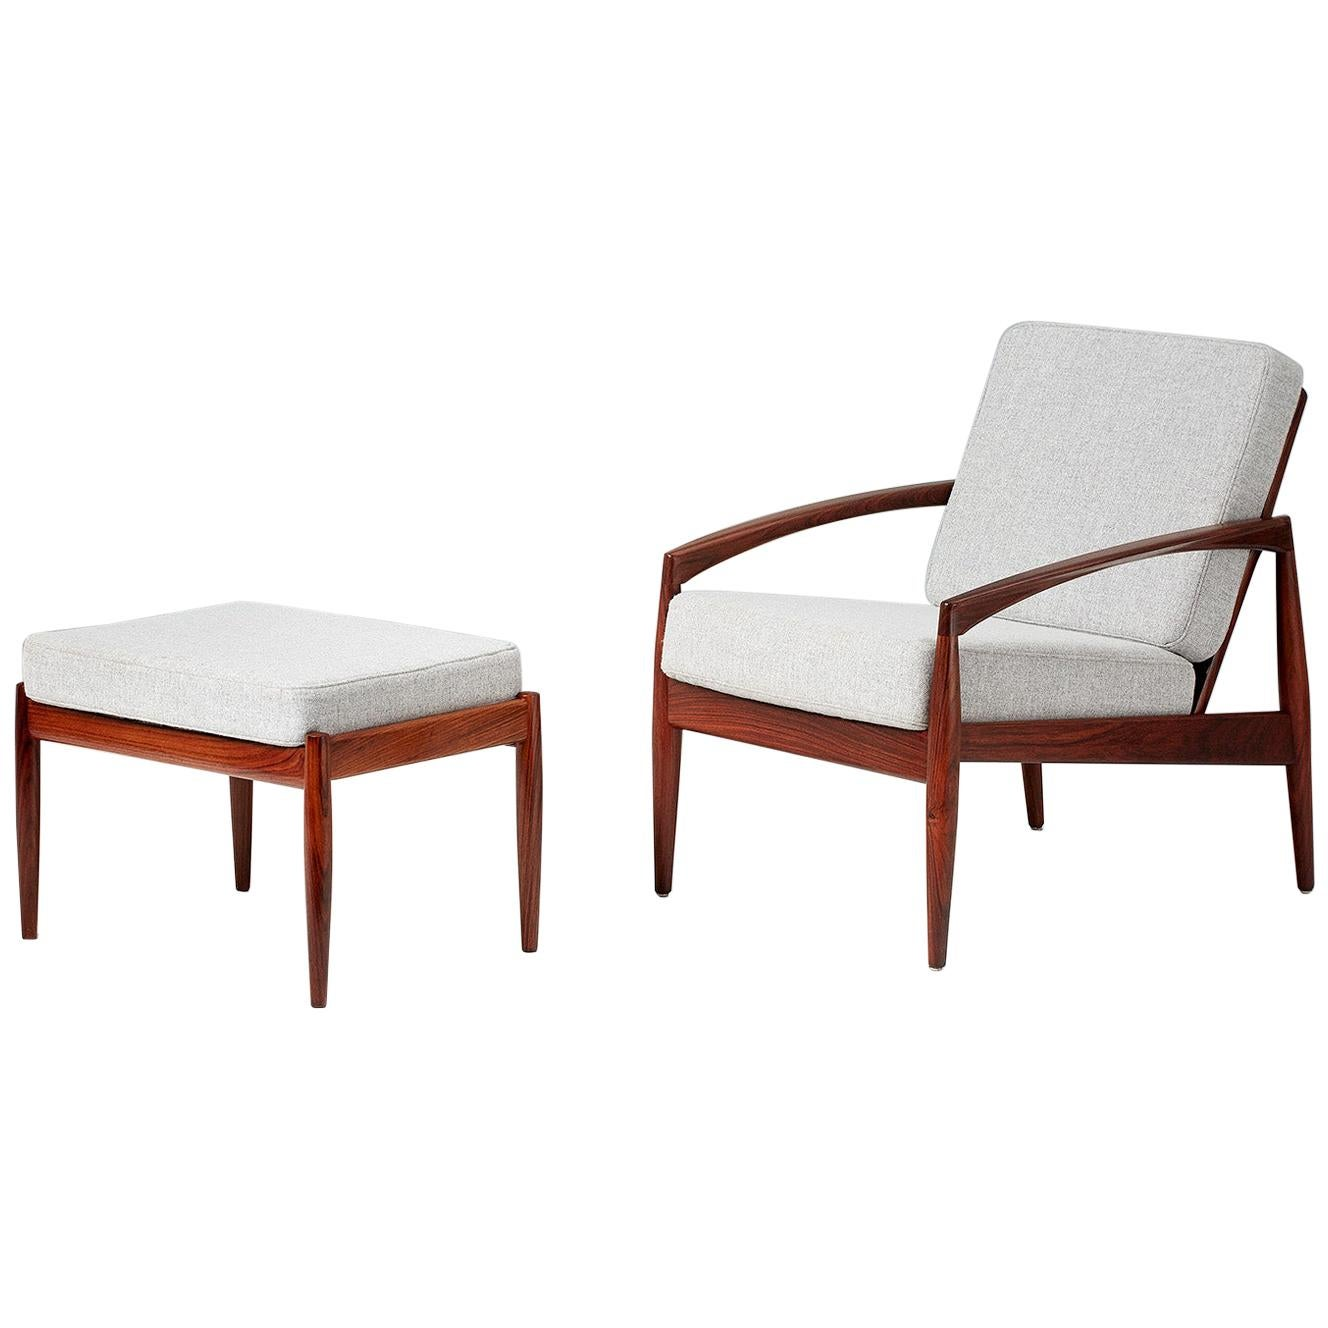 Kai Kristiansen Rosewood Paper Knife Lounge Chair and Ottoman, 1950s